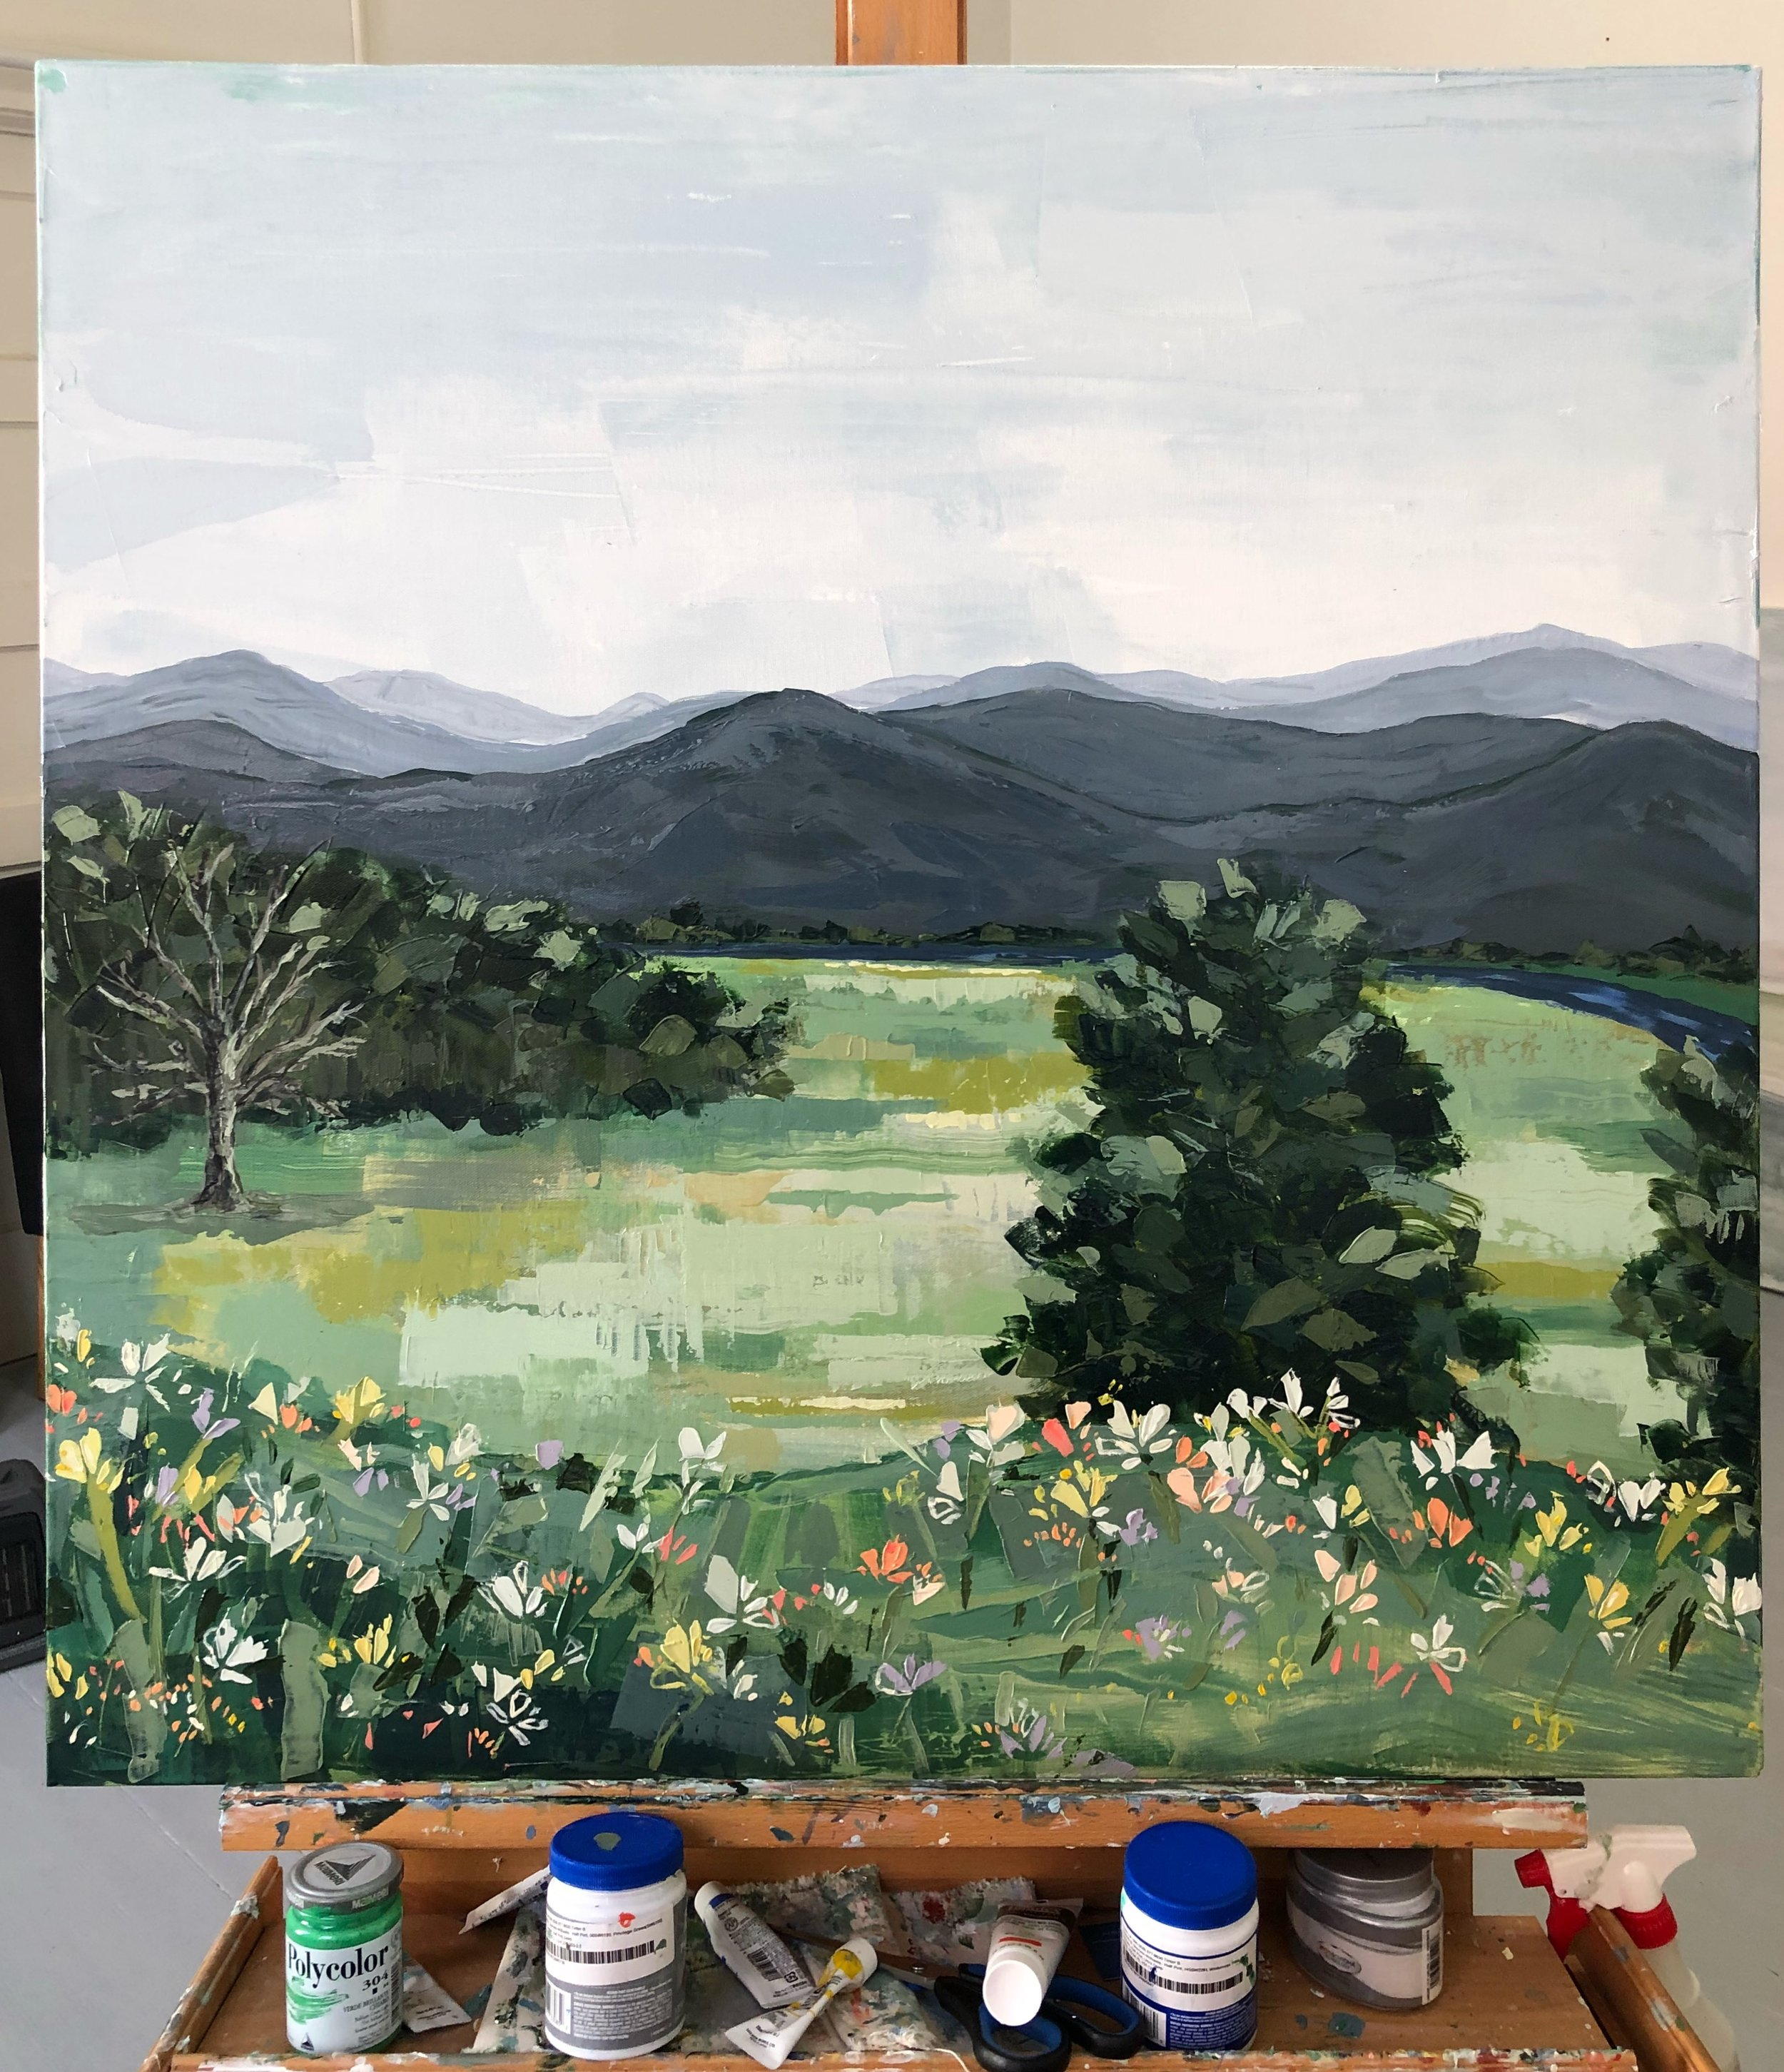 This was one my favorite commissions - I was able to meet and visit with a wonderful family at their farm not far from me in NC, and was commissioned to paint the view from the back porch looking over the farm.